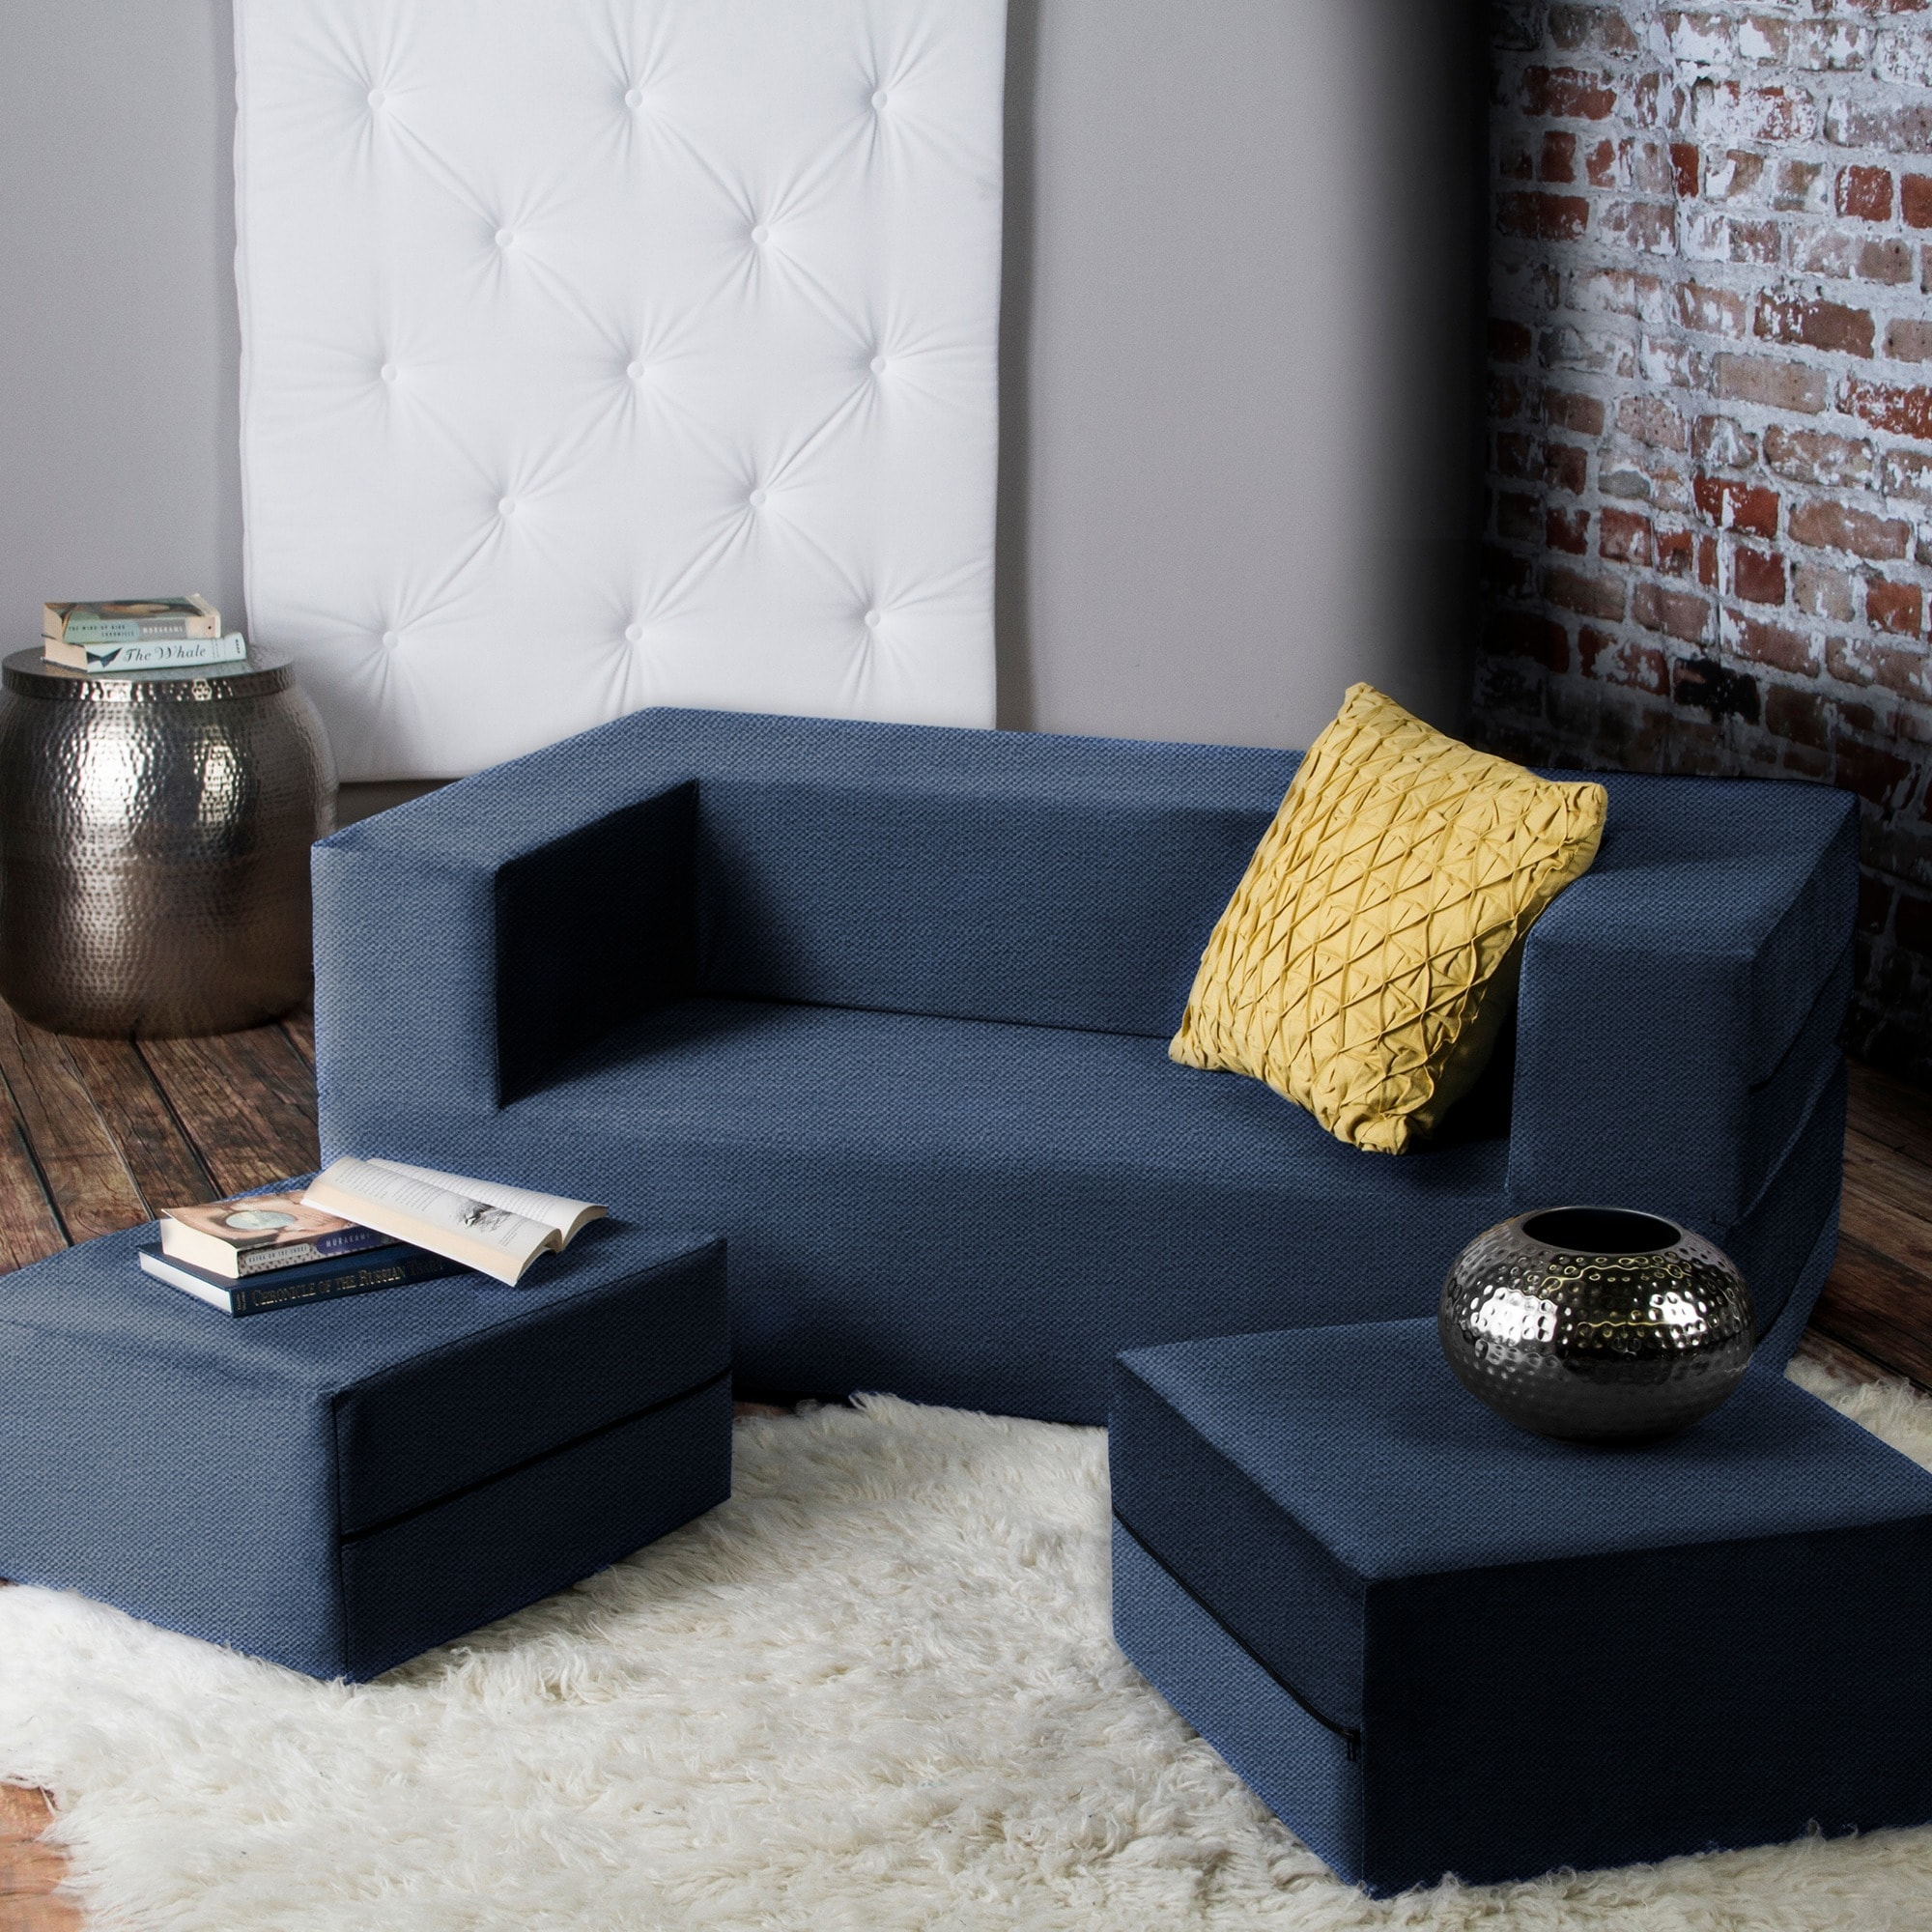 sofa set loveseat ottoman and a furniture los beige poundex outlet fabric steal montreal bobkona v montereal